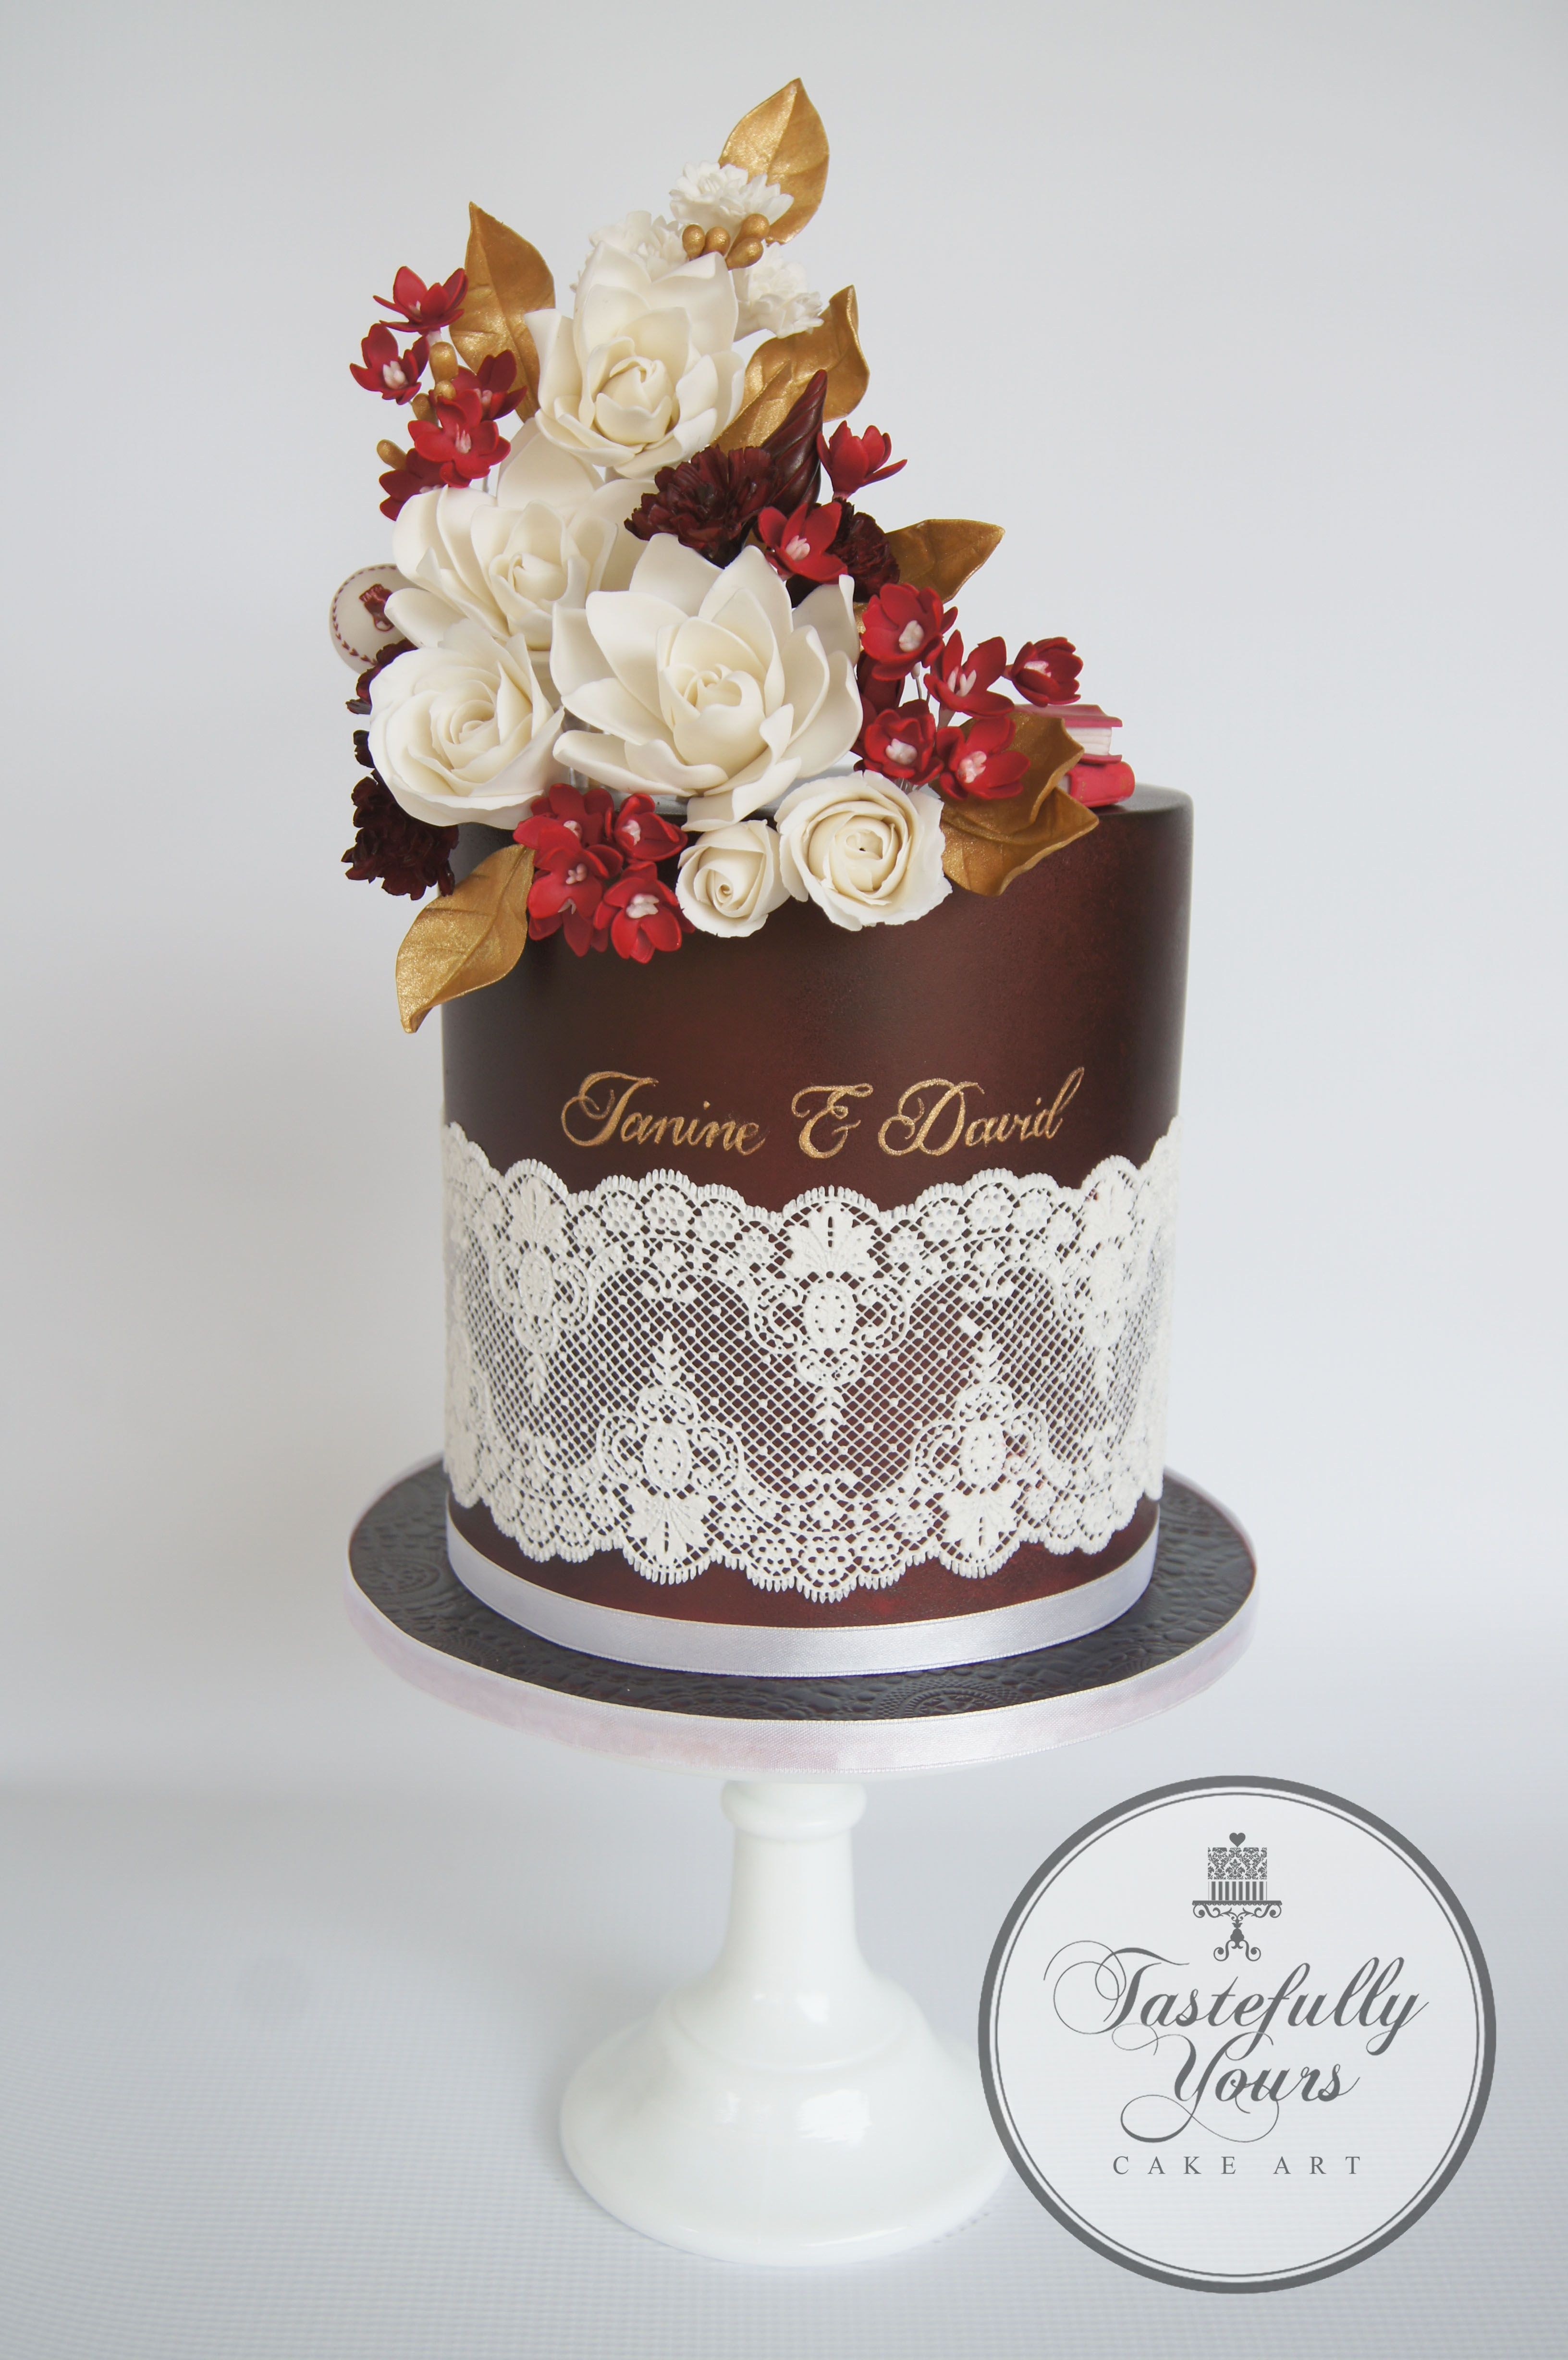 Ruby wedding anniversary - 40 years | cAkes | Pinterest | Ruby ...